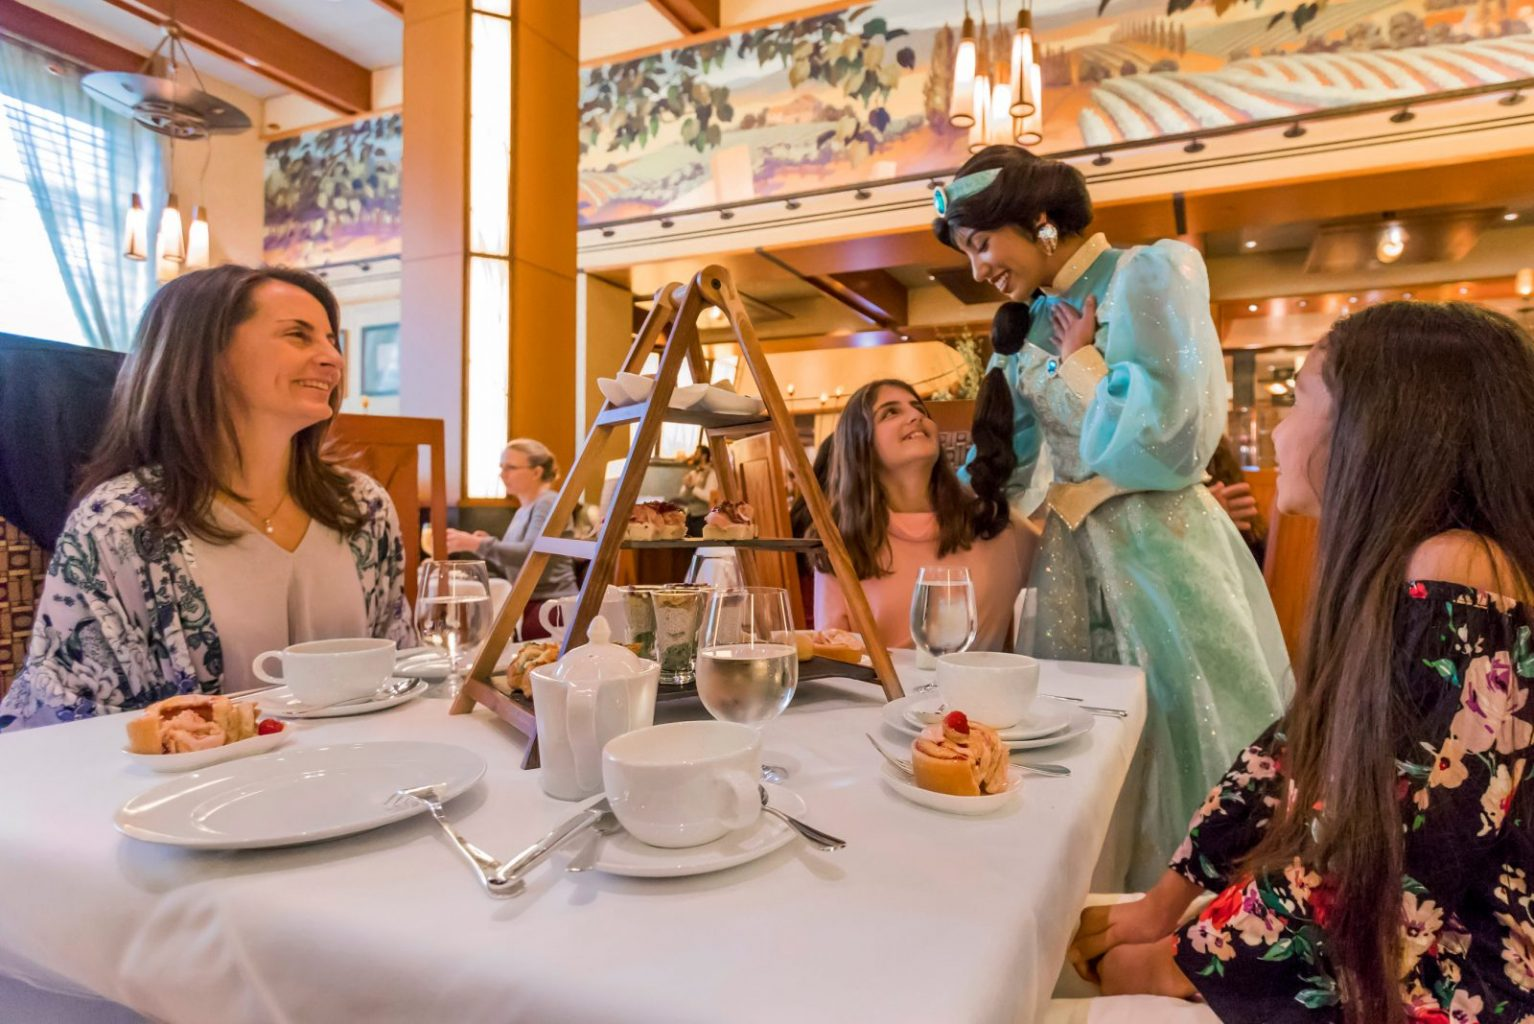 A Princess Breakfast at Napa Rose, a luxurious Disneyland restaurant